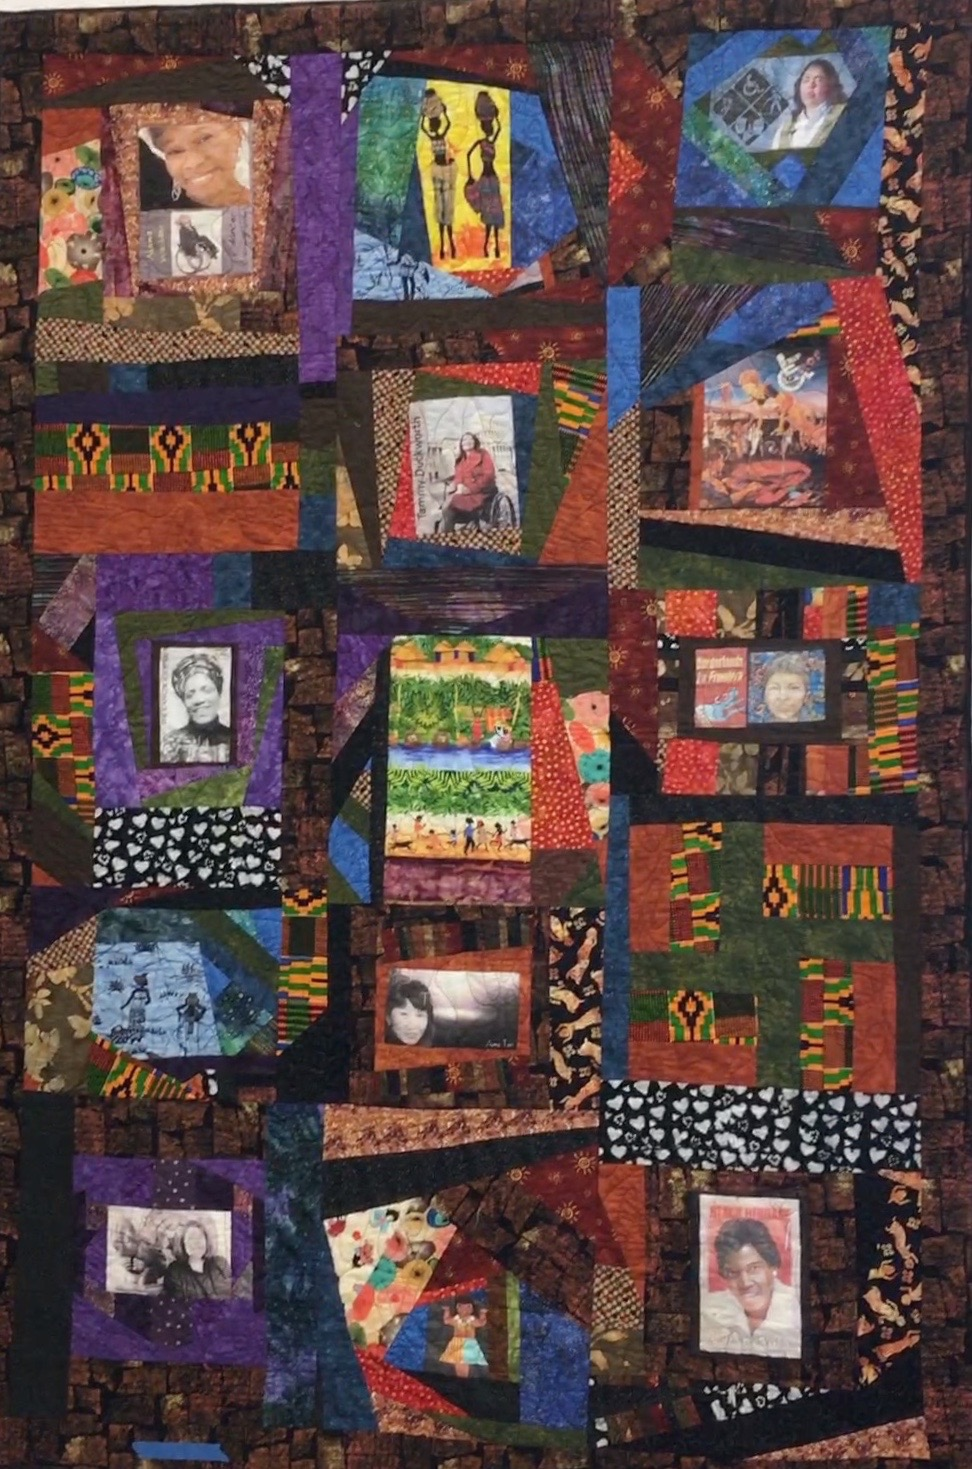 Colorful large quilt showing 8 disabled women of color: Alana Wallace, choreographer; Kathy Martinez, US Ass't Secretary Dept of Labor; Congresswoman Tammy Duckworth; writers Audre Lorde, Gloria Anzaldua, Amy Tan; Cherokee Chief Wilma Mankiller; former Congresswoman Barbara Jordan